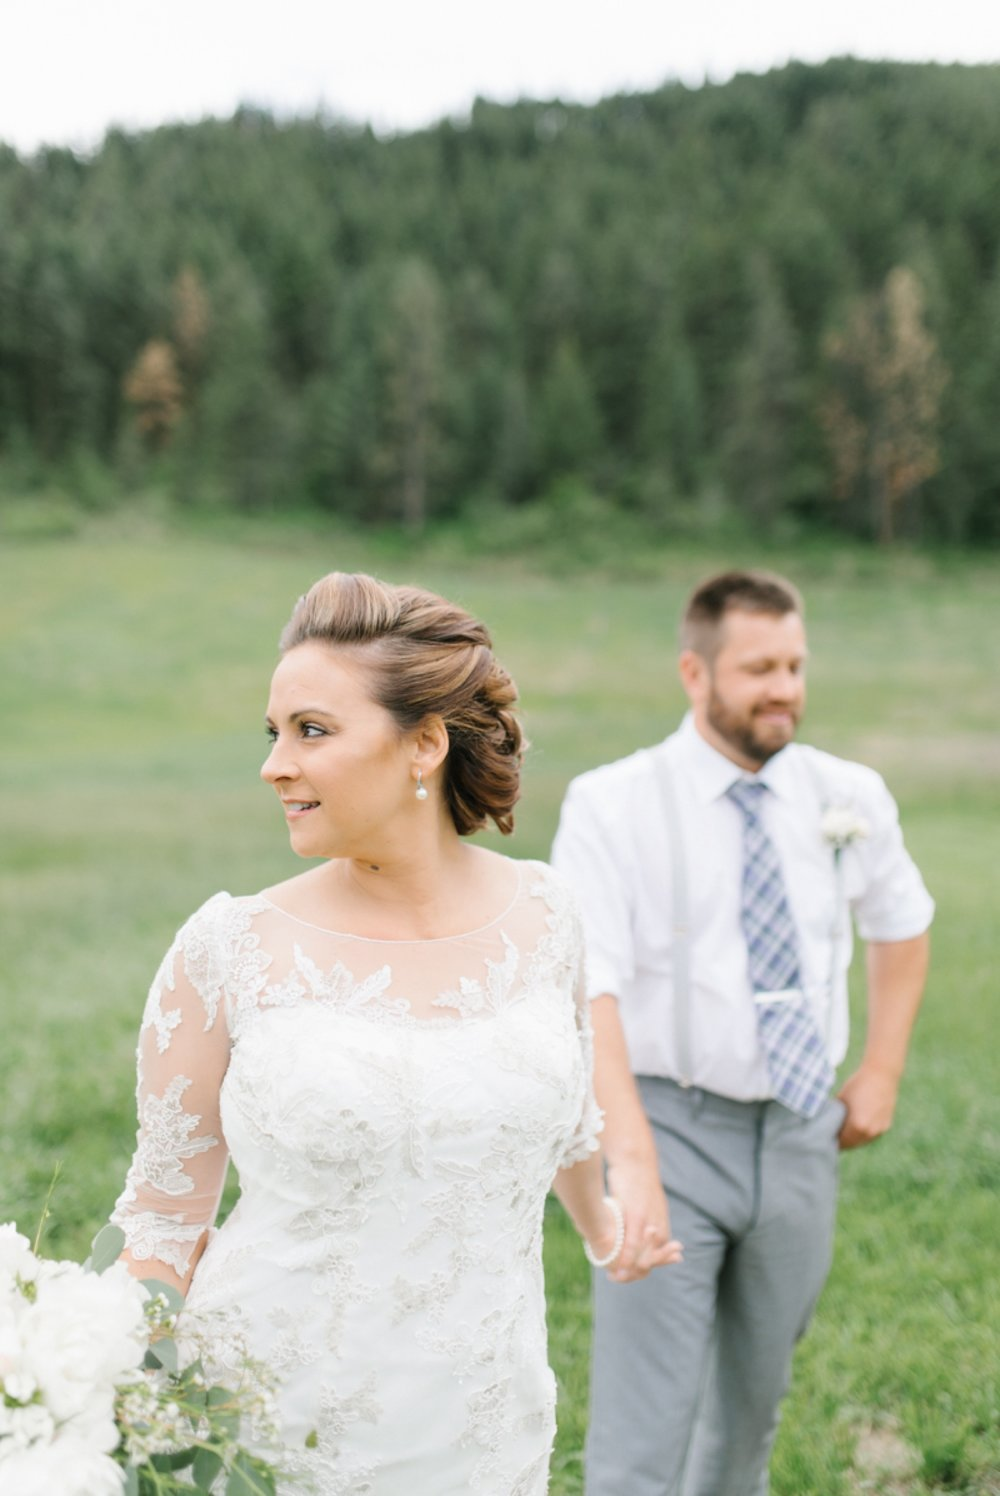 Wenatchee Wedding Photographer | Hampton Hideaway | Summer Rustic Wedding Eastern Washington | Emma Rose Company | Pastel Wedding Inspiration | Lace Wedding | Pacific Northwest Wedding 43.jpg